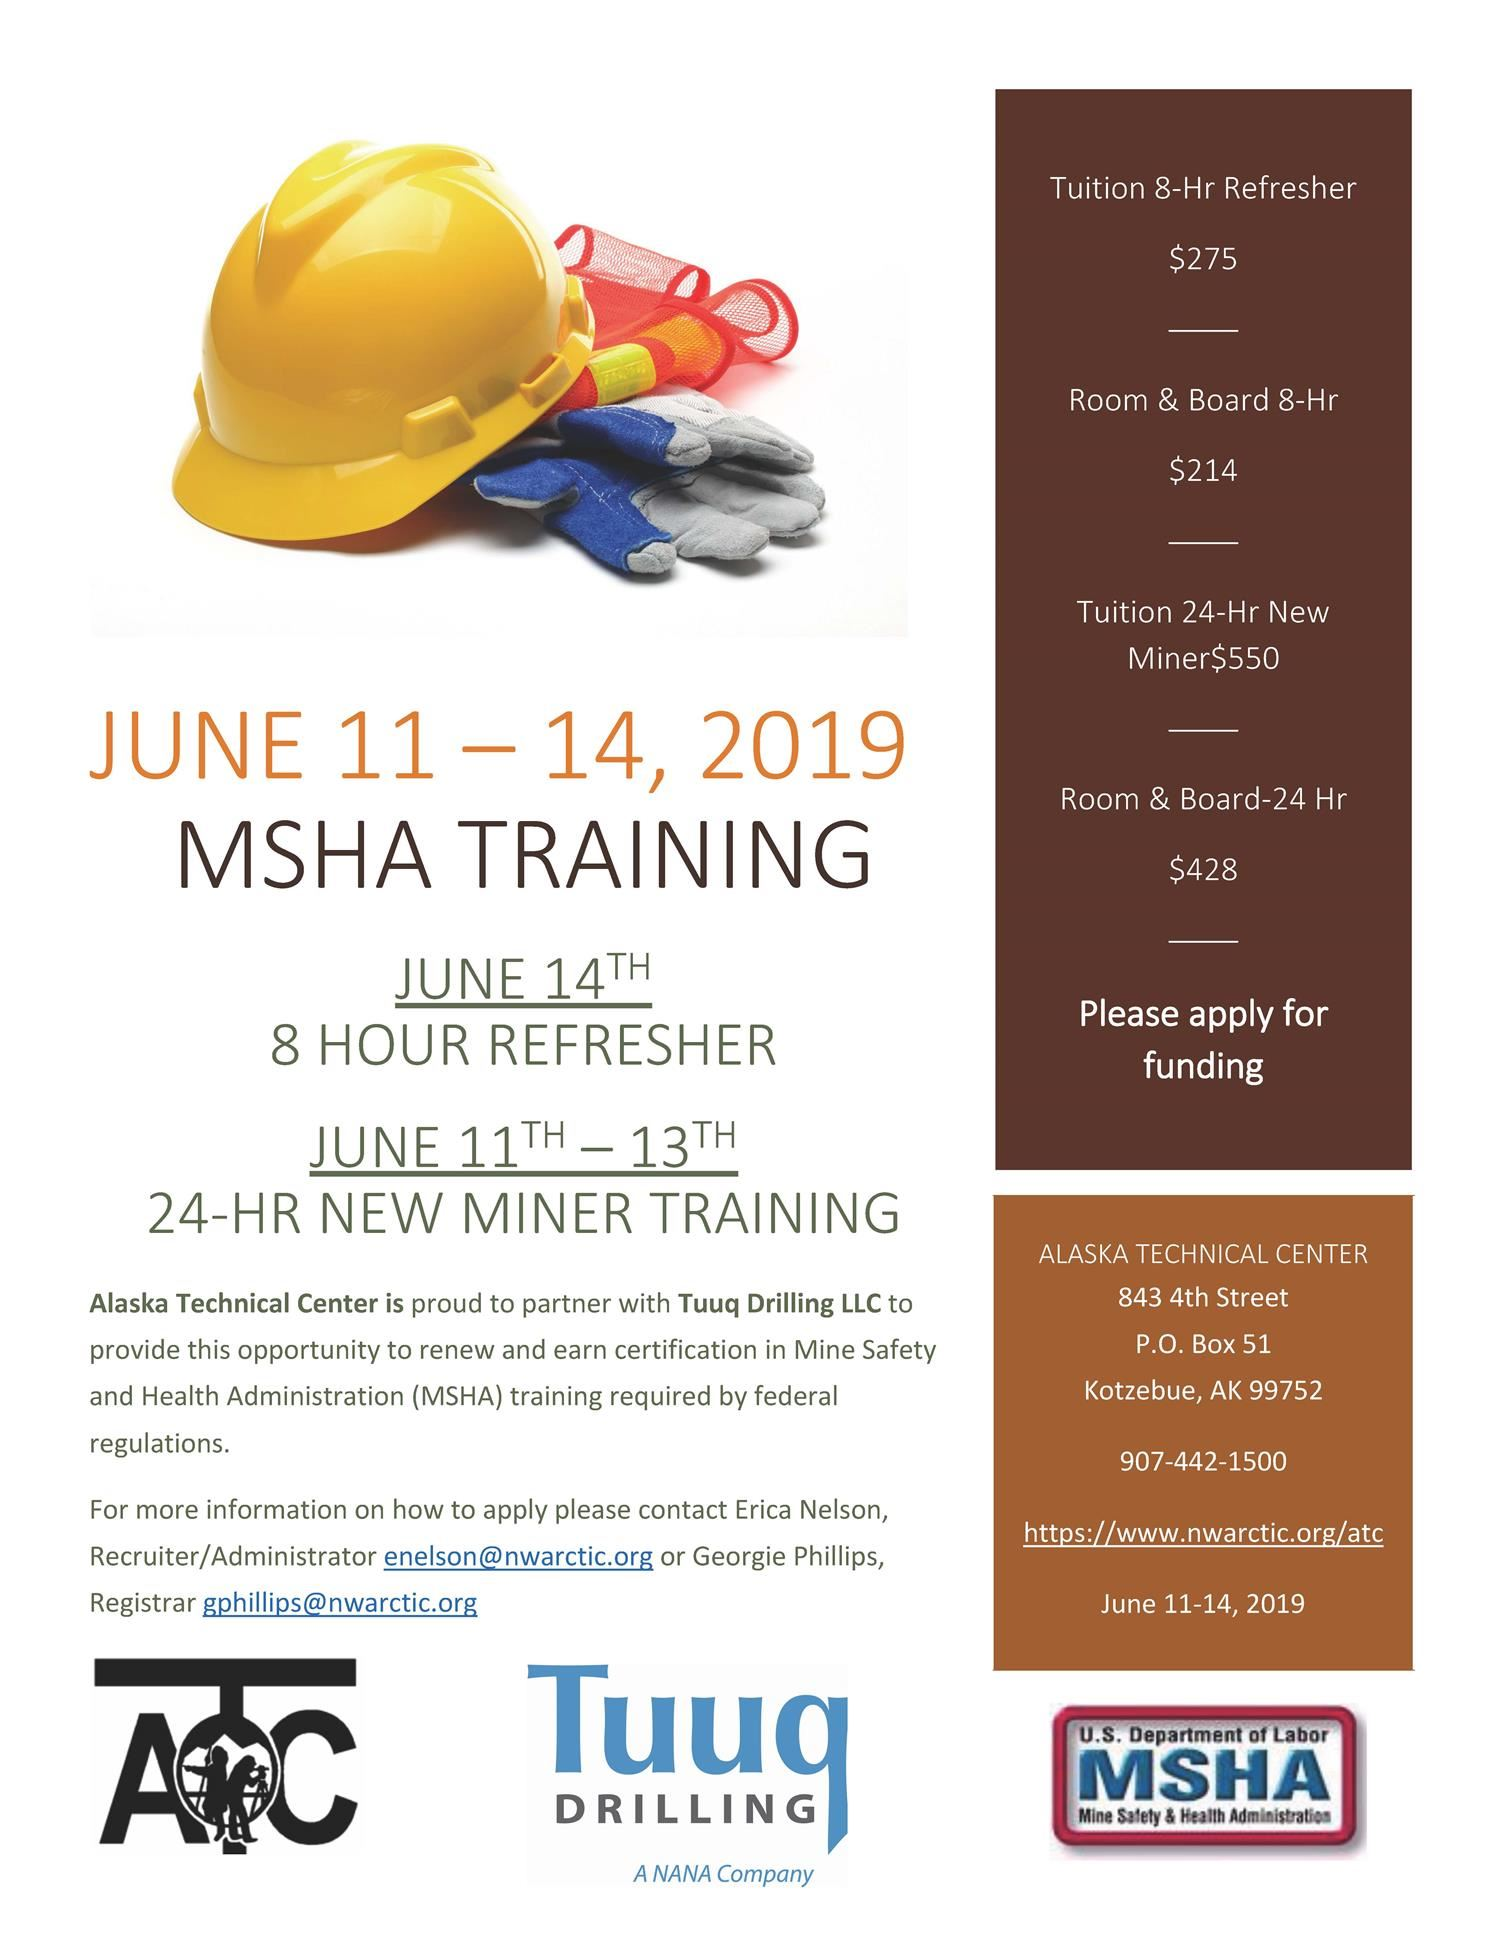 CLICK HERE FOR AN APPLICATION MSHA TRAINING JUNE 12 -15, 2019